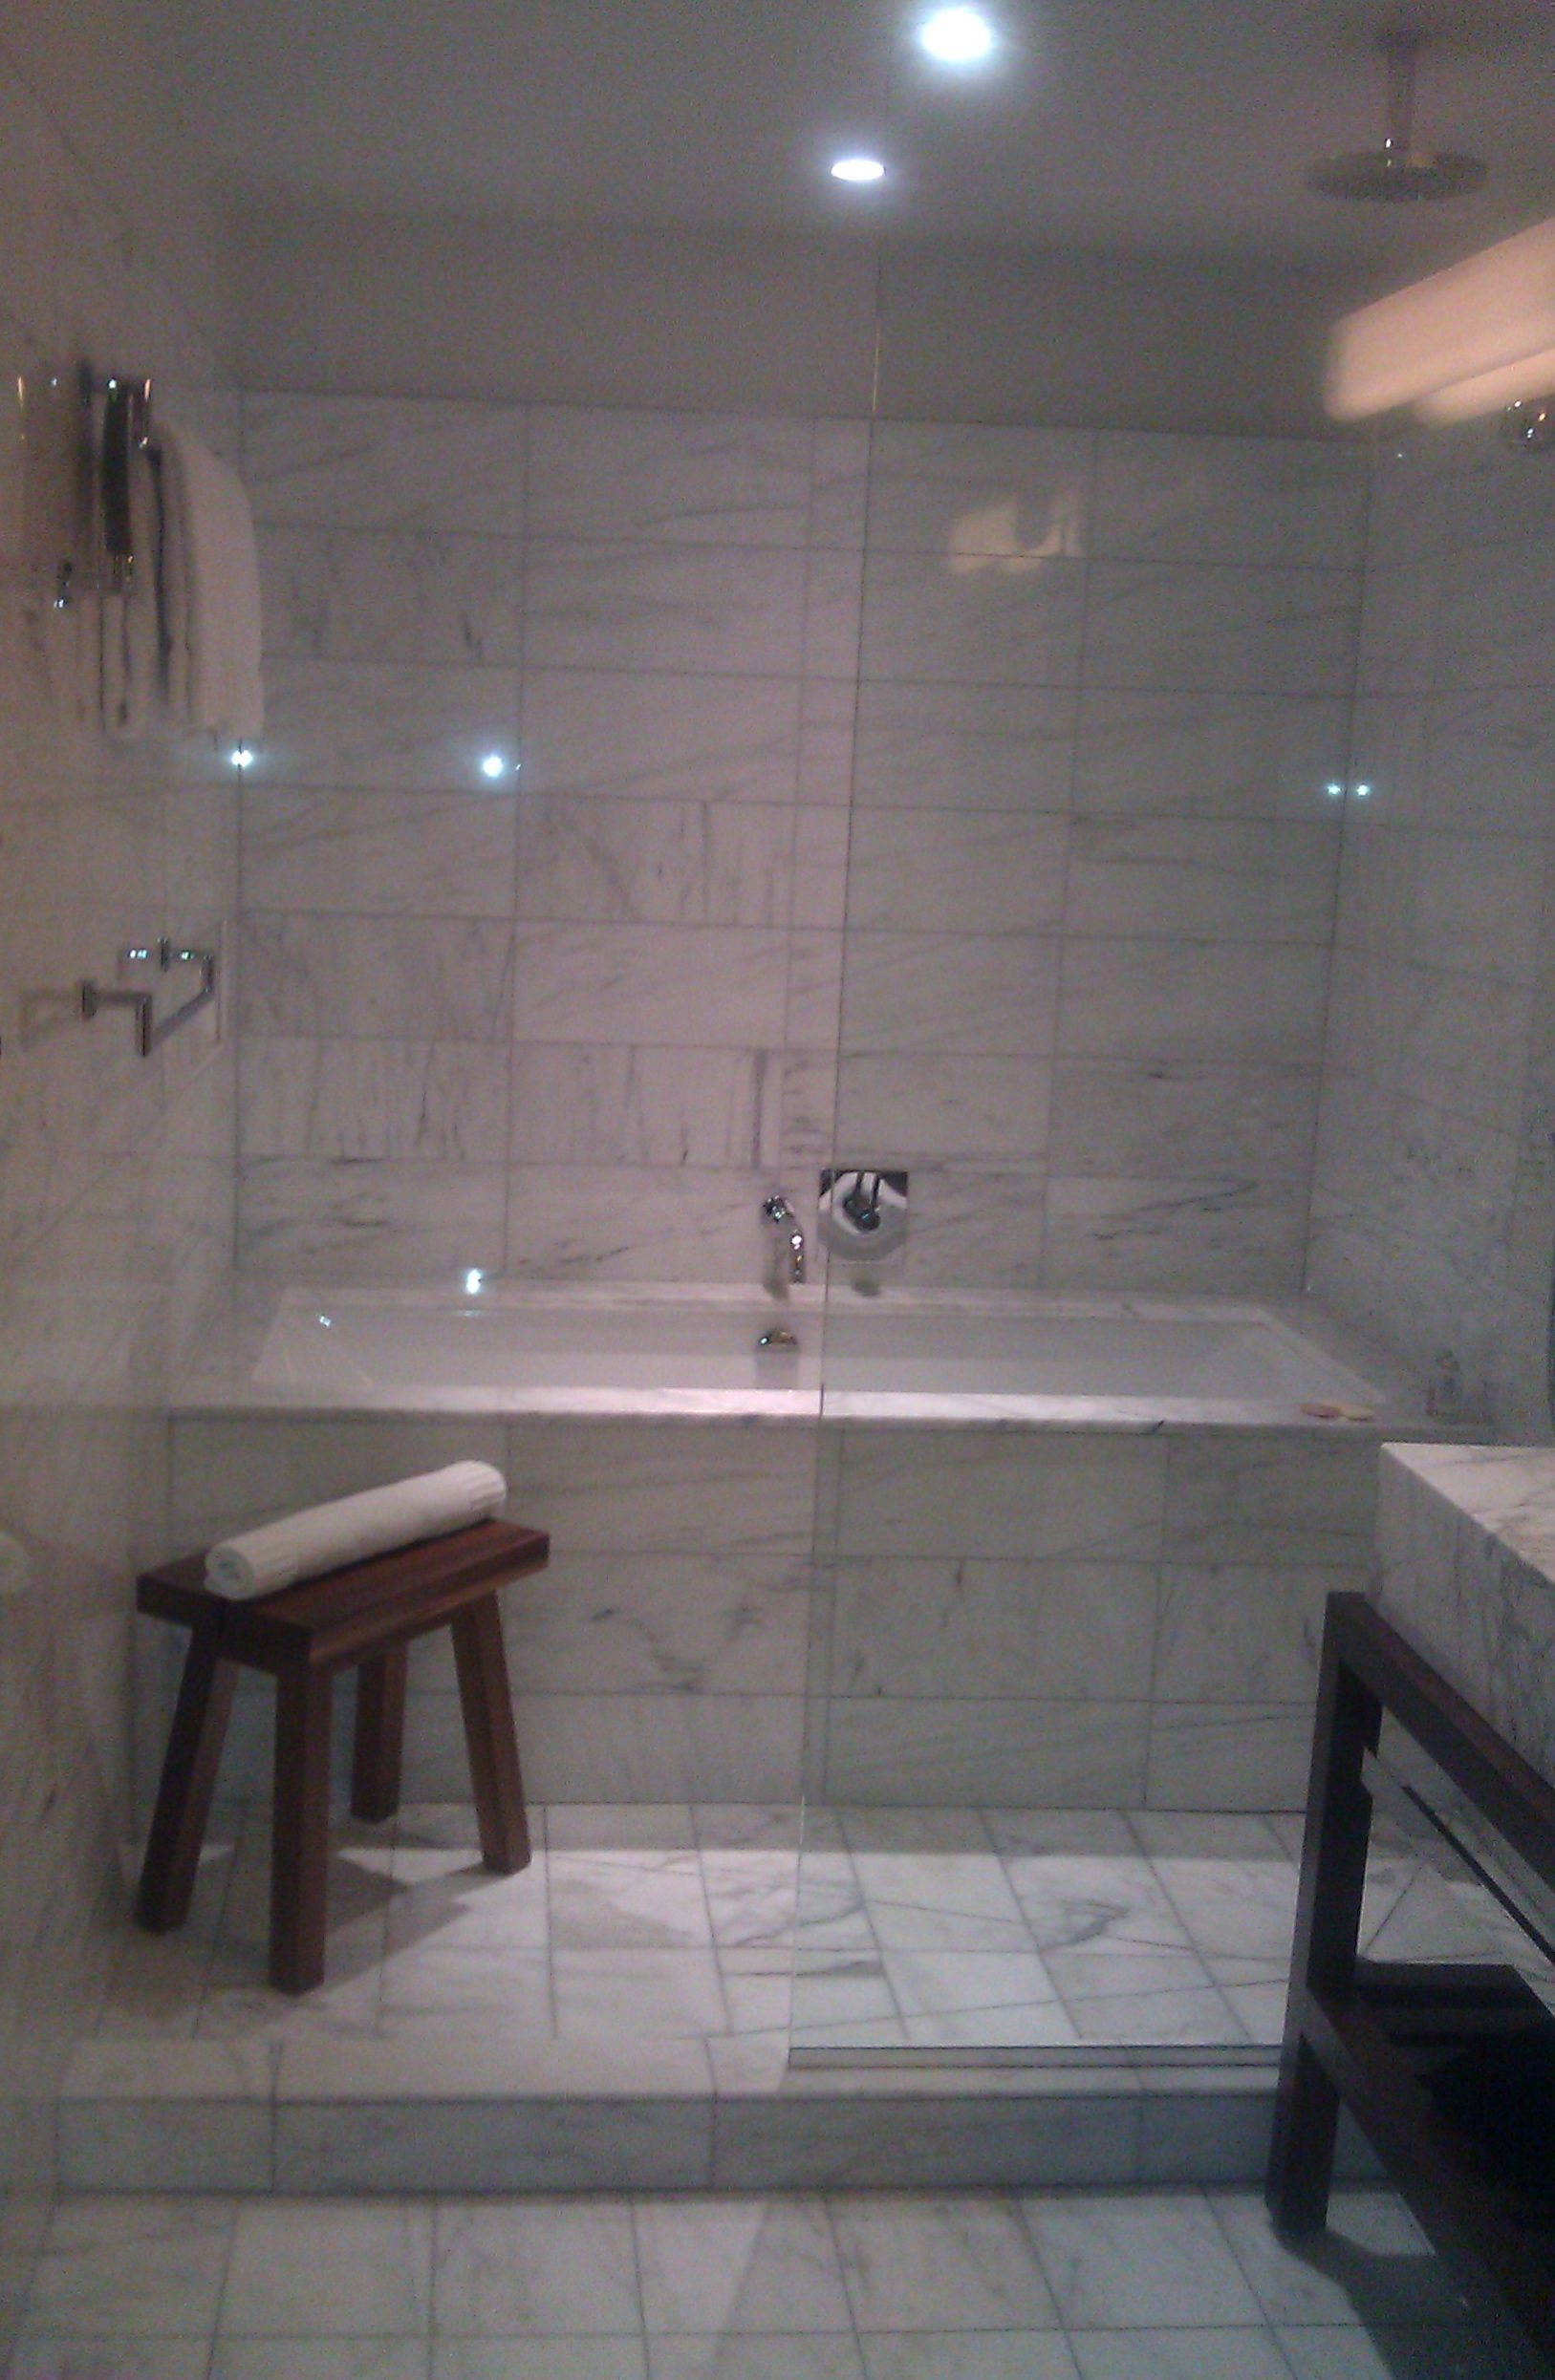 Bathroom Ideas Replace Tub With Shower : Tub with walk in shower replace bathroom reno